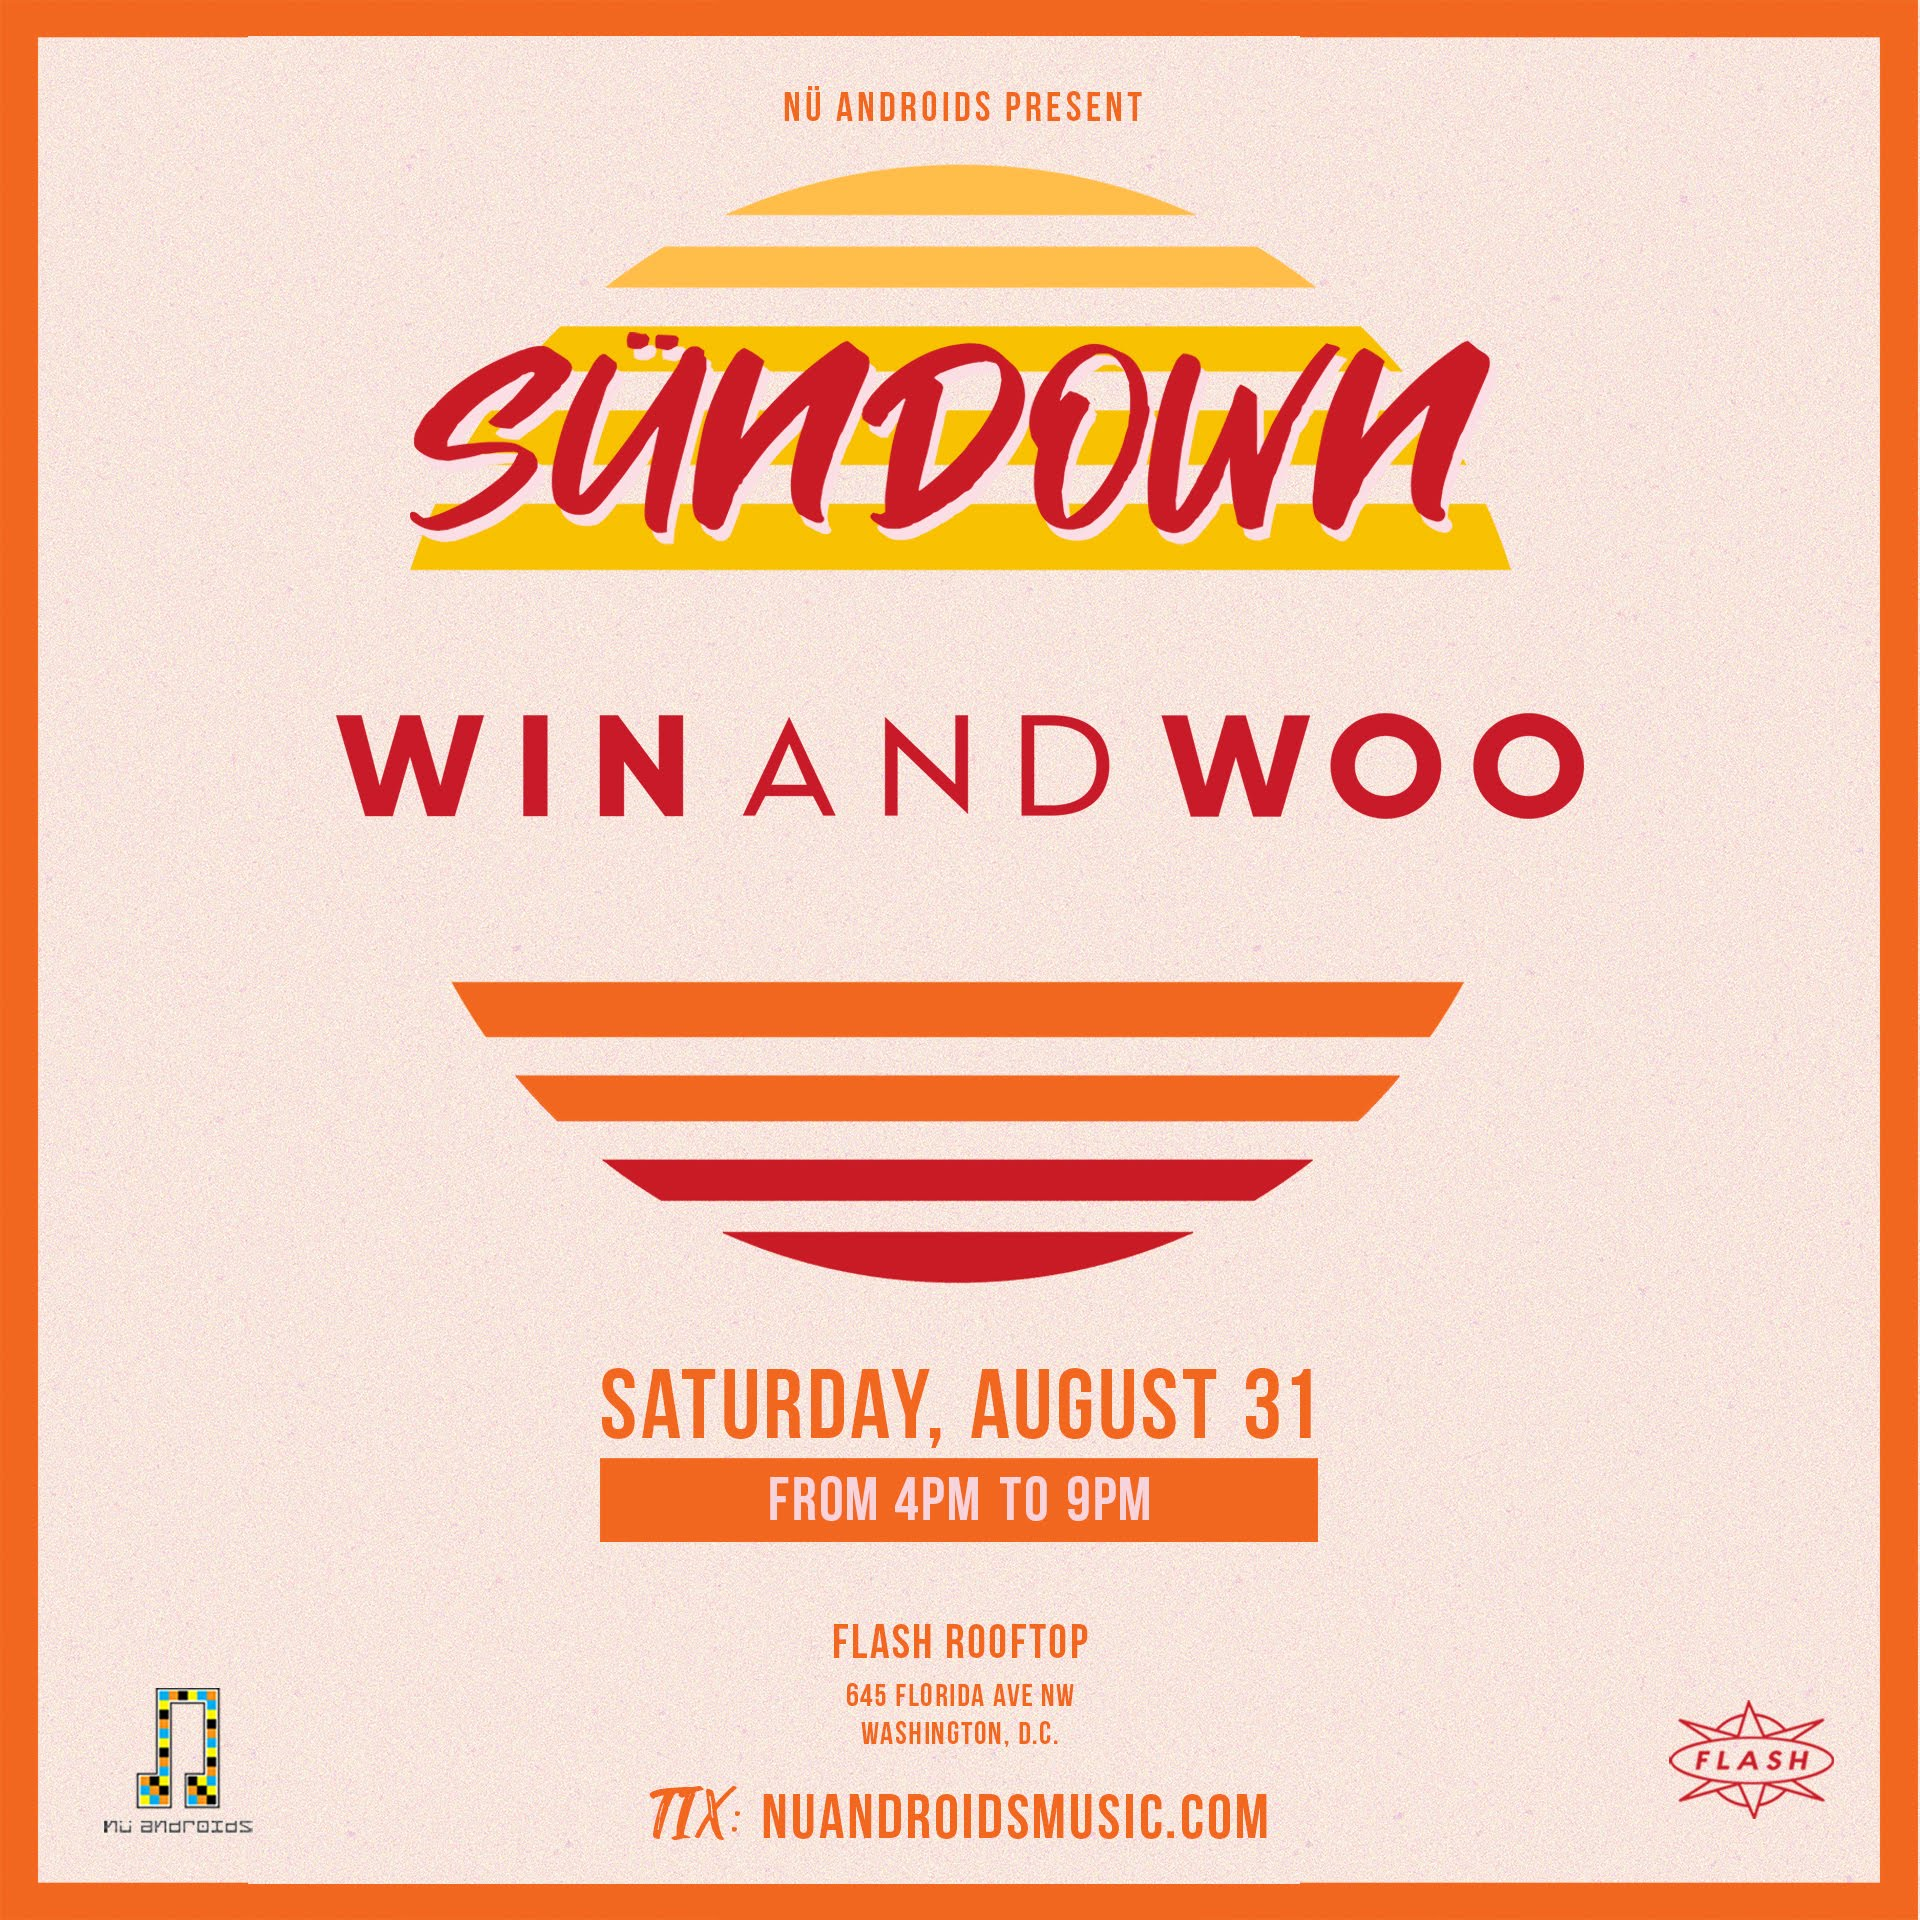 SünDown: Win and Woo event thumbnail